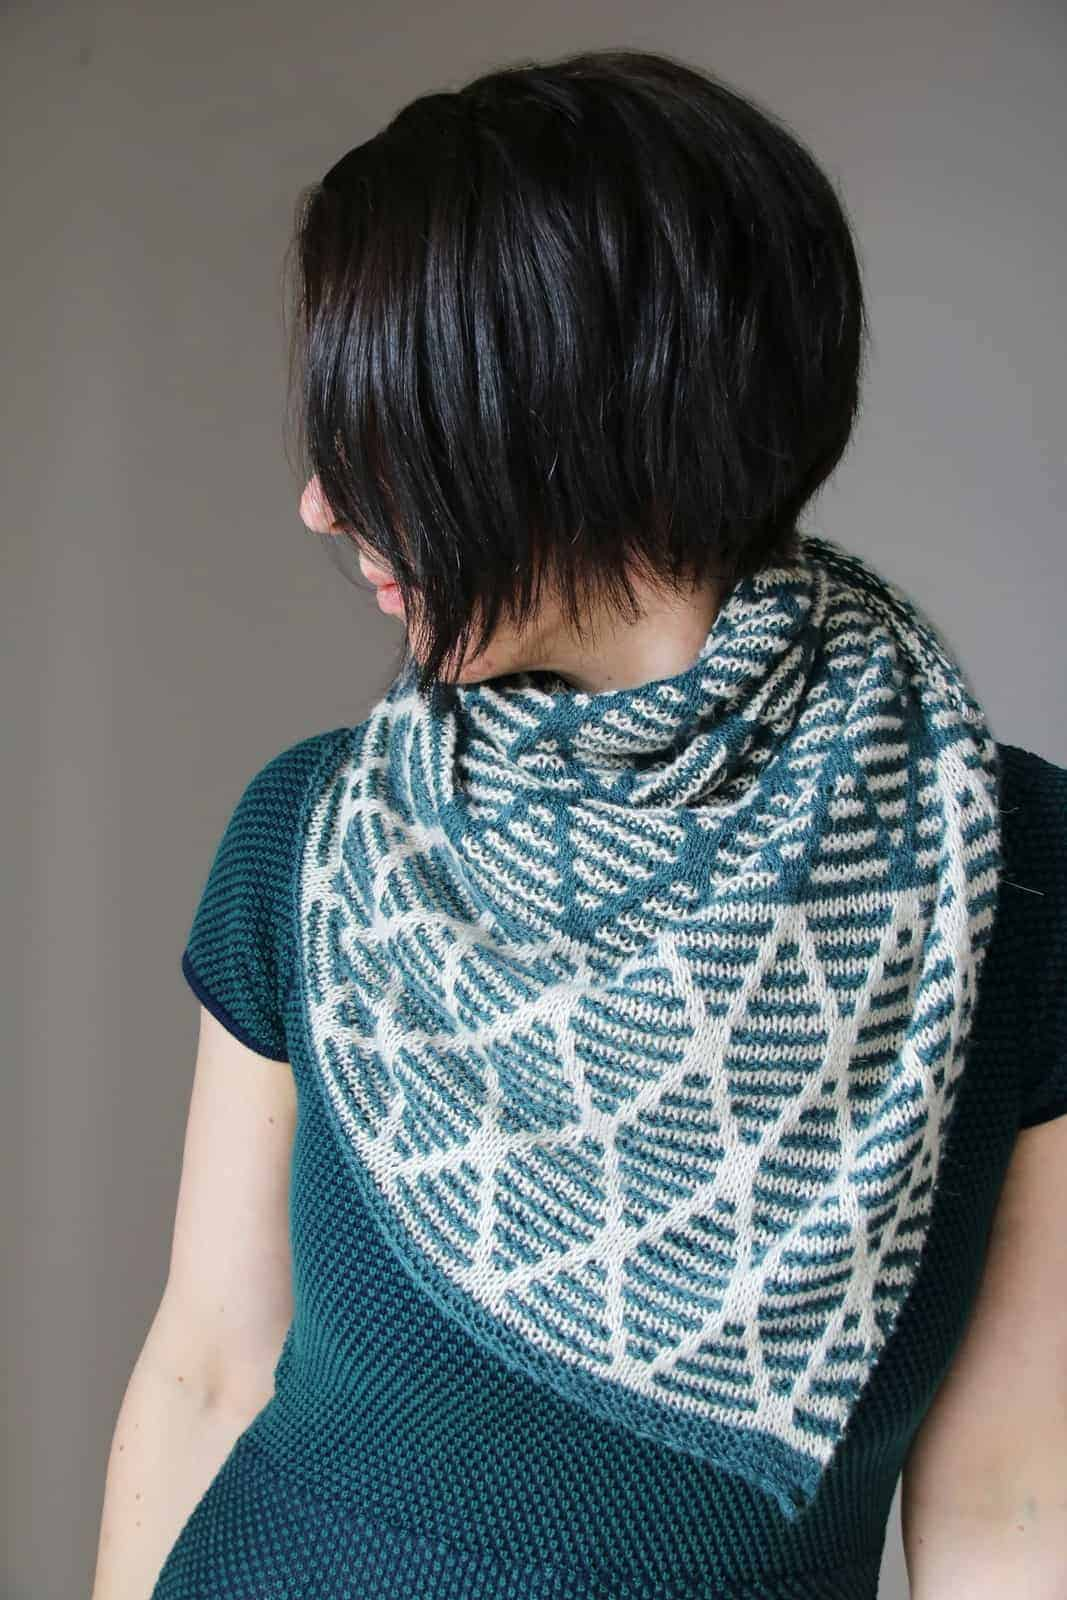 A green and white geometric shawl.